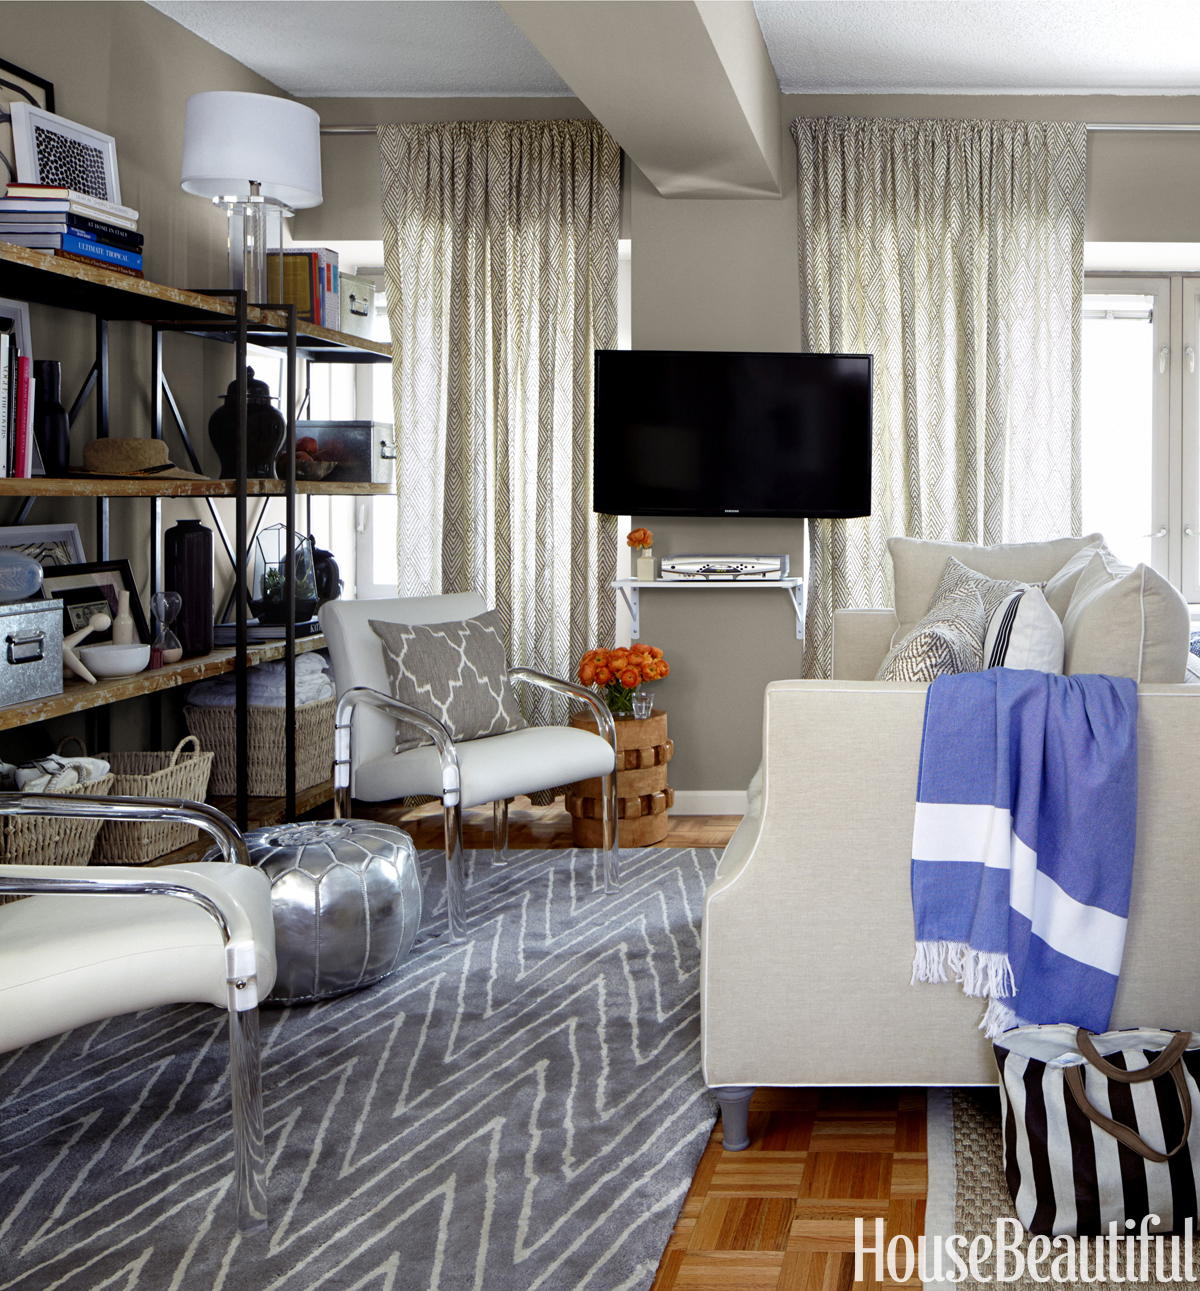 Small Living Room Decorating Ideas - How to Arrange a ... on Small Space Small Living Room Ideas  id=58301